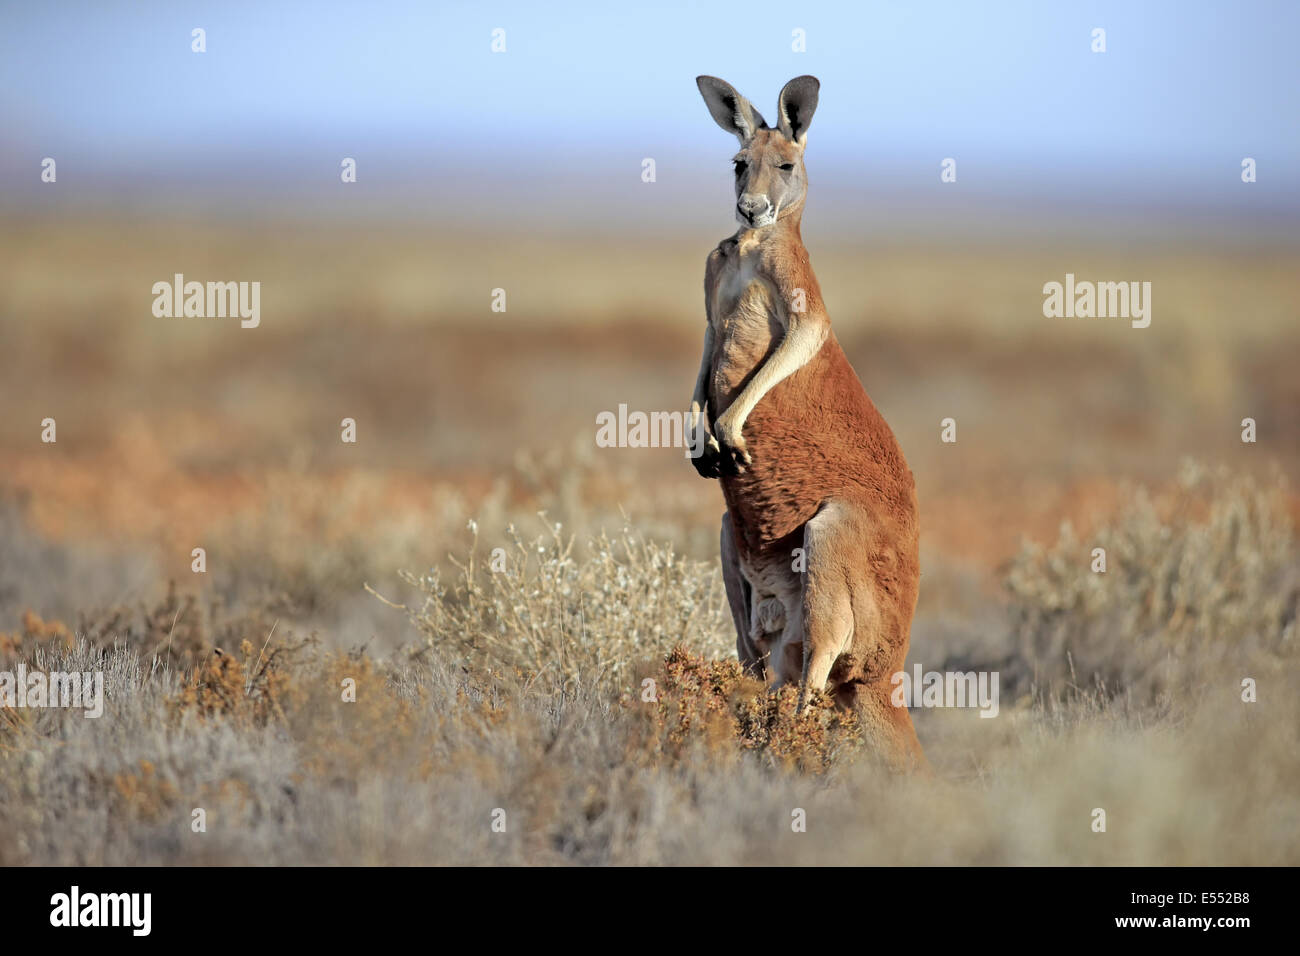 the red kangaroo: macropus rufus essay View essay - kangaroo from english 101 at deer park high school, deer park sheep they regurgitate the vegetation they have eaten, chew it ascud, and then swallow it again for final digestion.